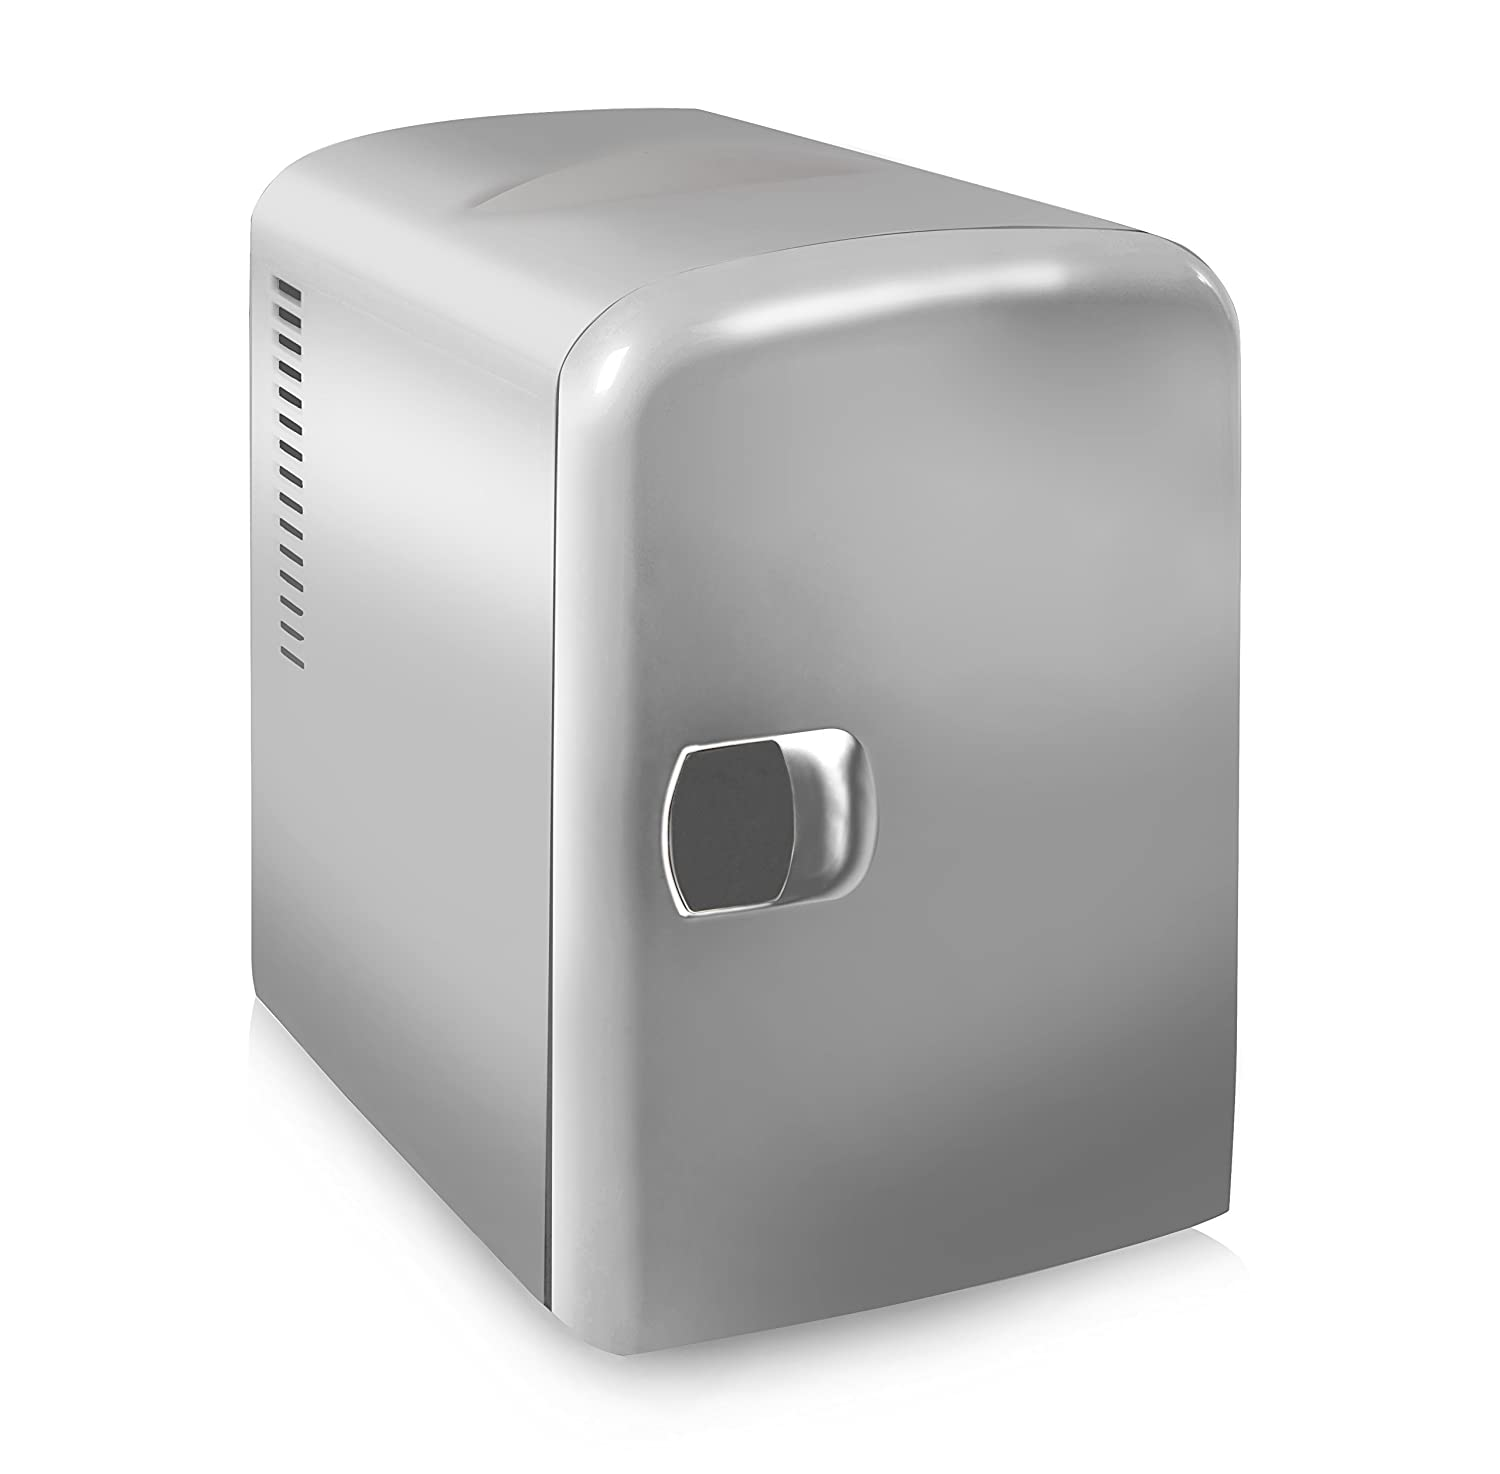 Signature S30007 4 Litre Mini Fridge